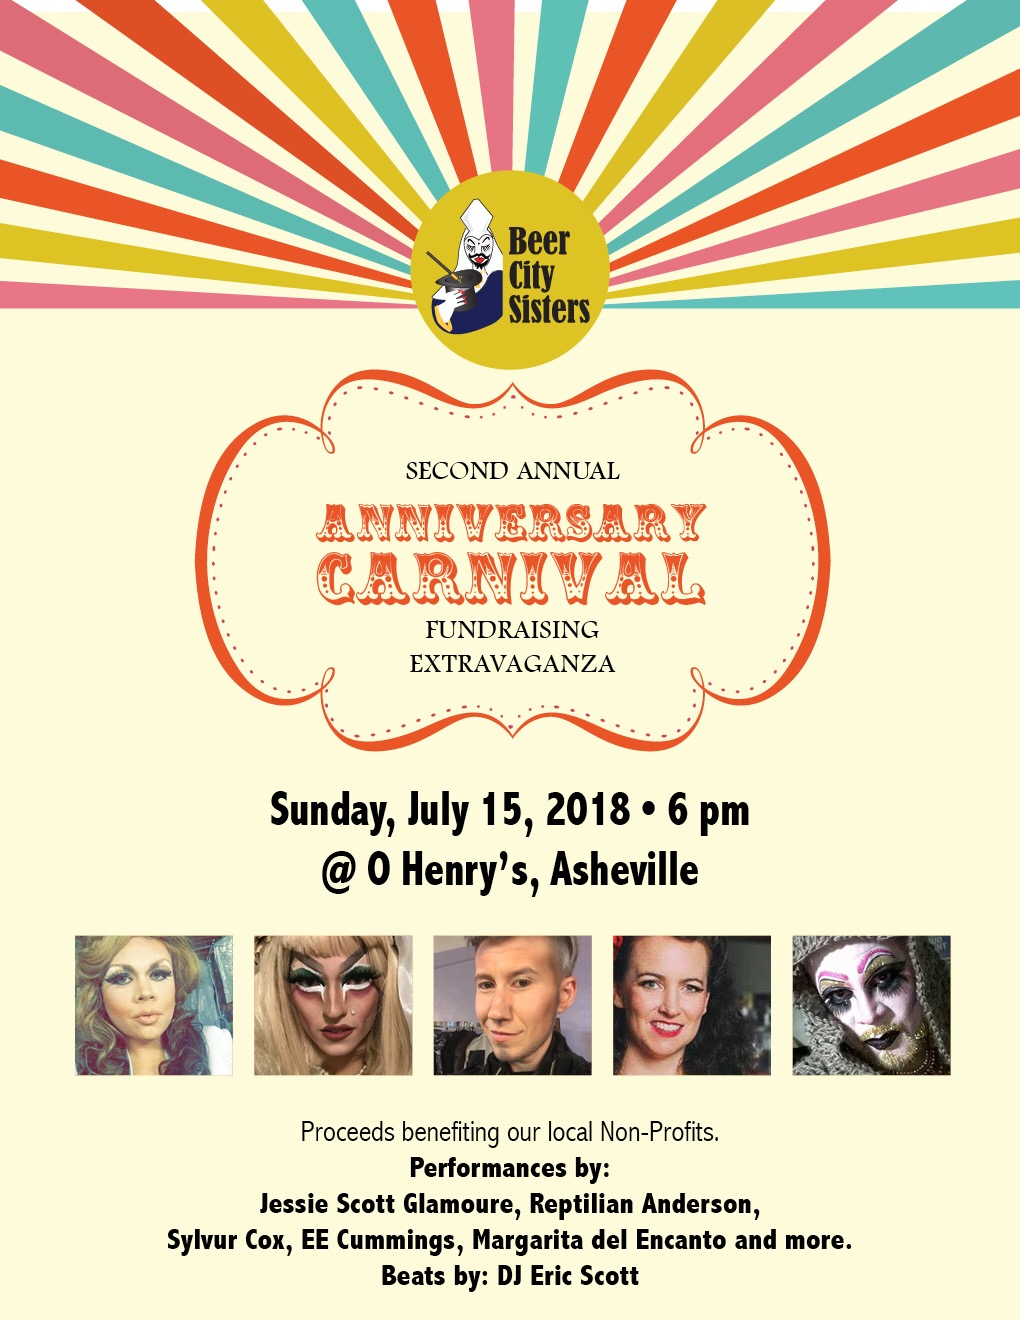 July 15, 2018 - 2nd Annual Anniversary Carnival Extravaganza